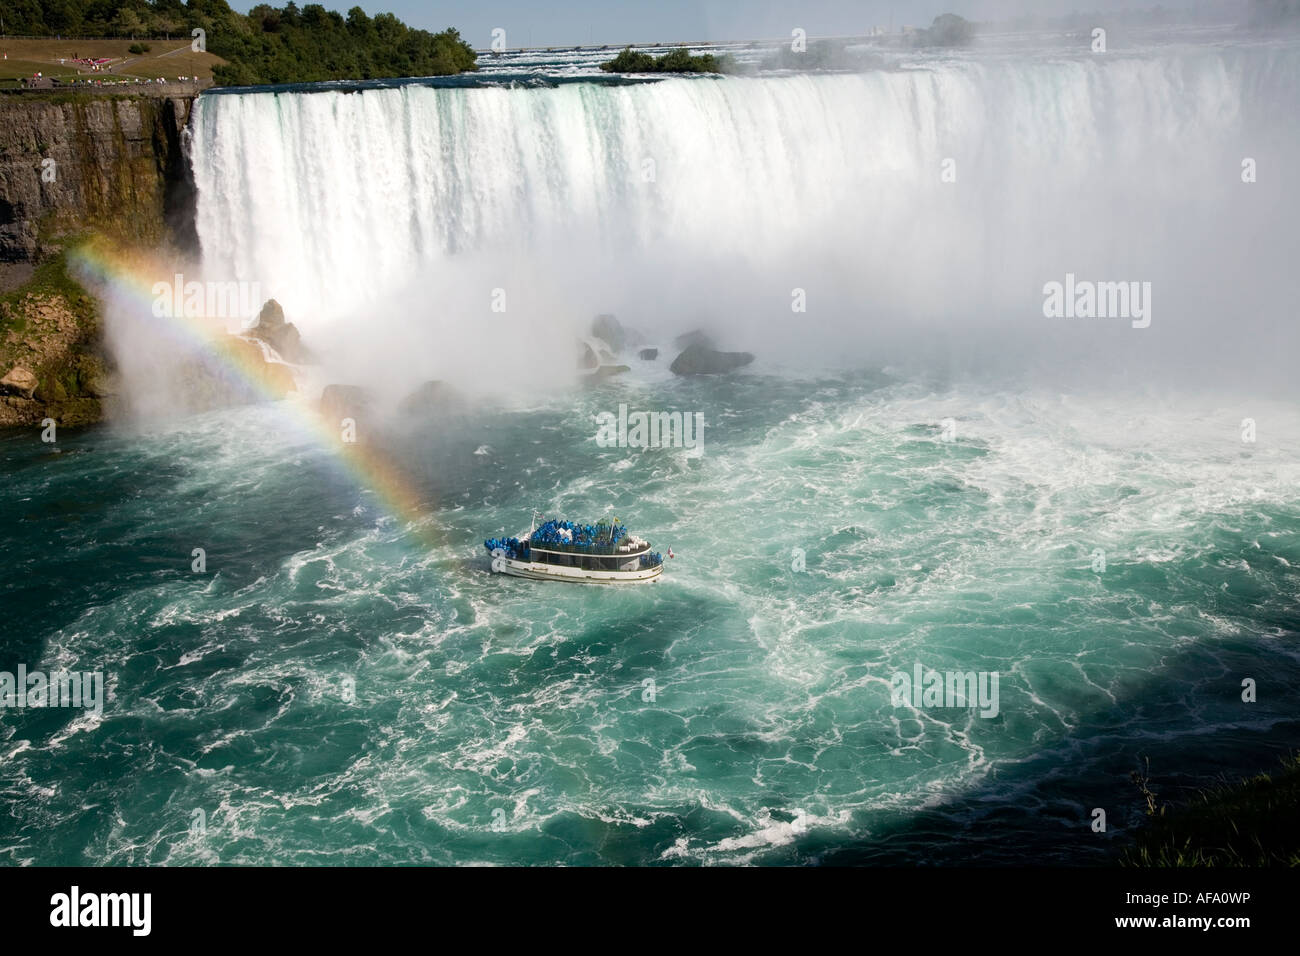 Tour boat 'Maid of the Mist' approaching the Horseshoe Falls;Niagara Falls;Ontario;Canada;North America - Stock Image